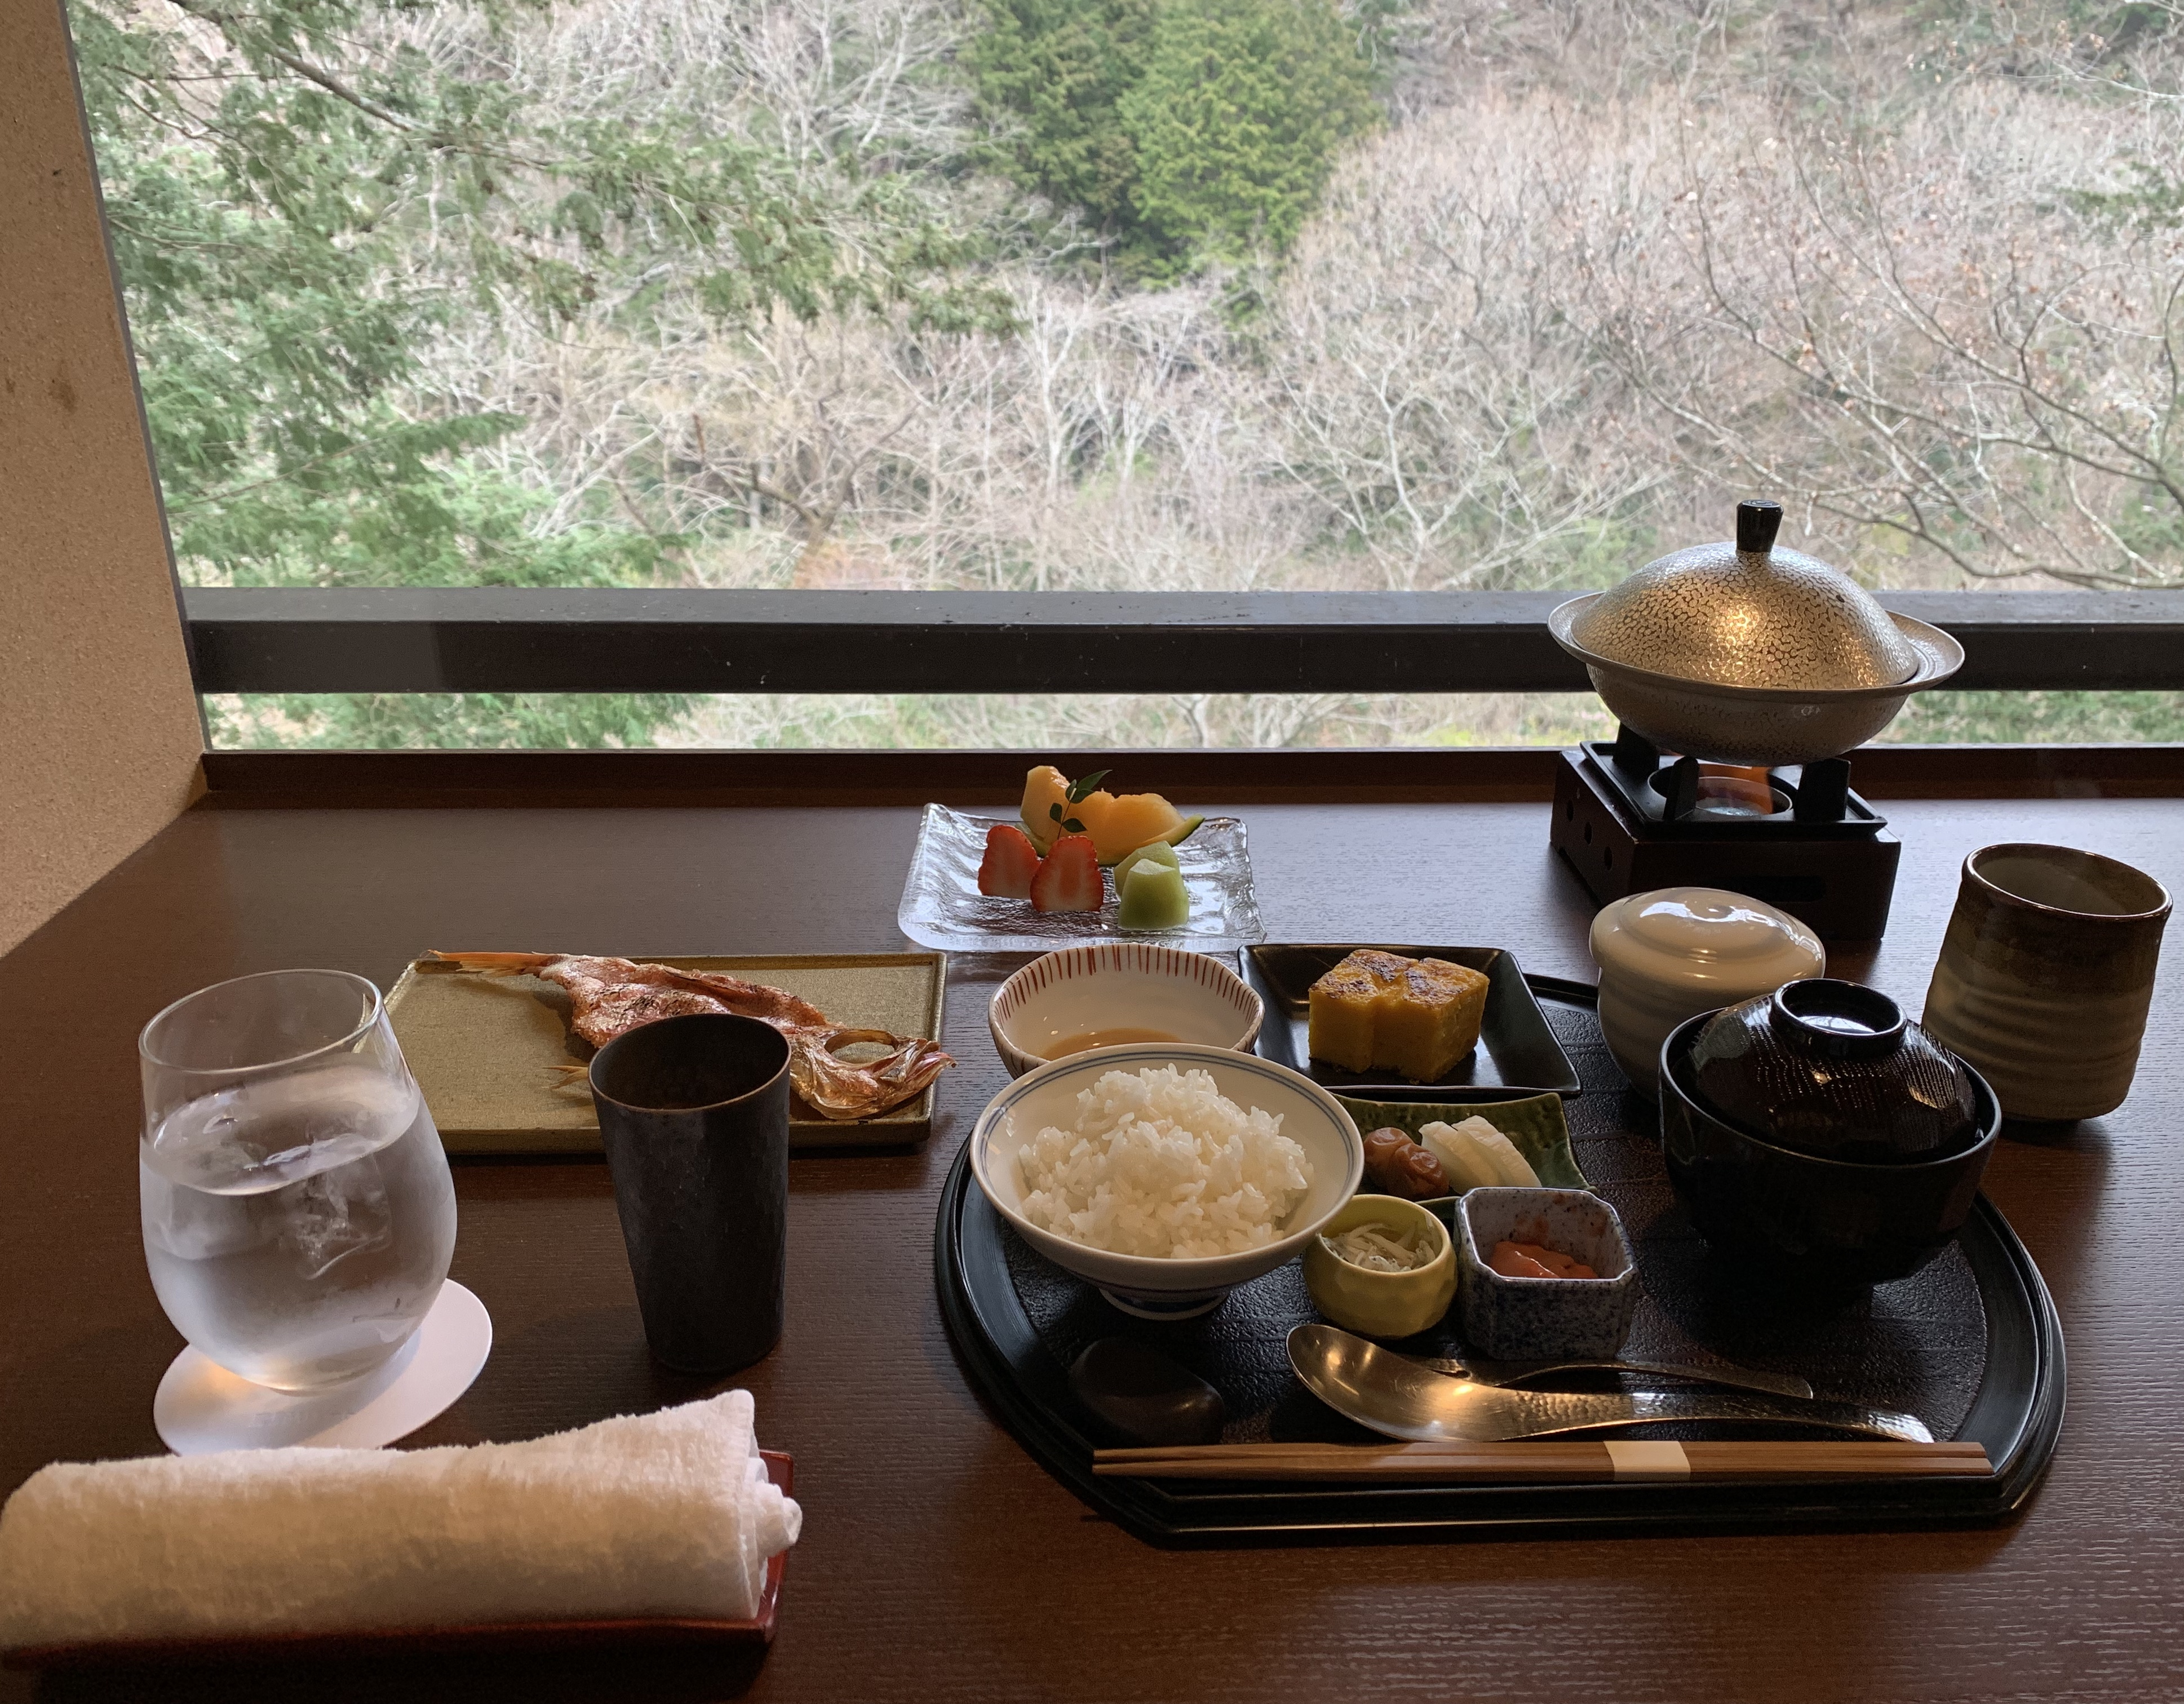 Japanese breakfast spoils you.